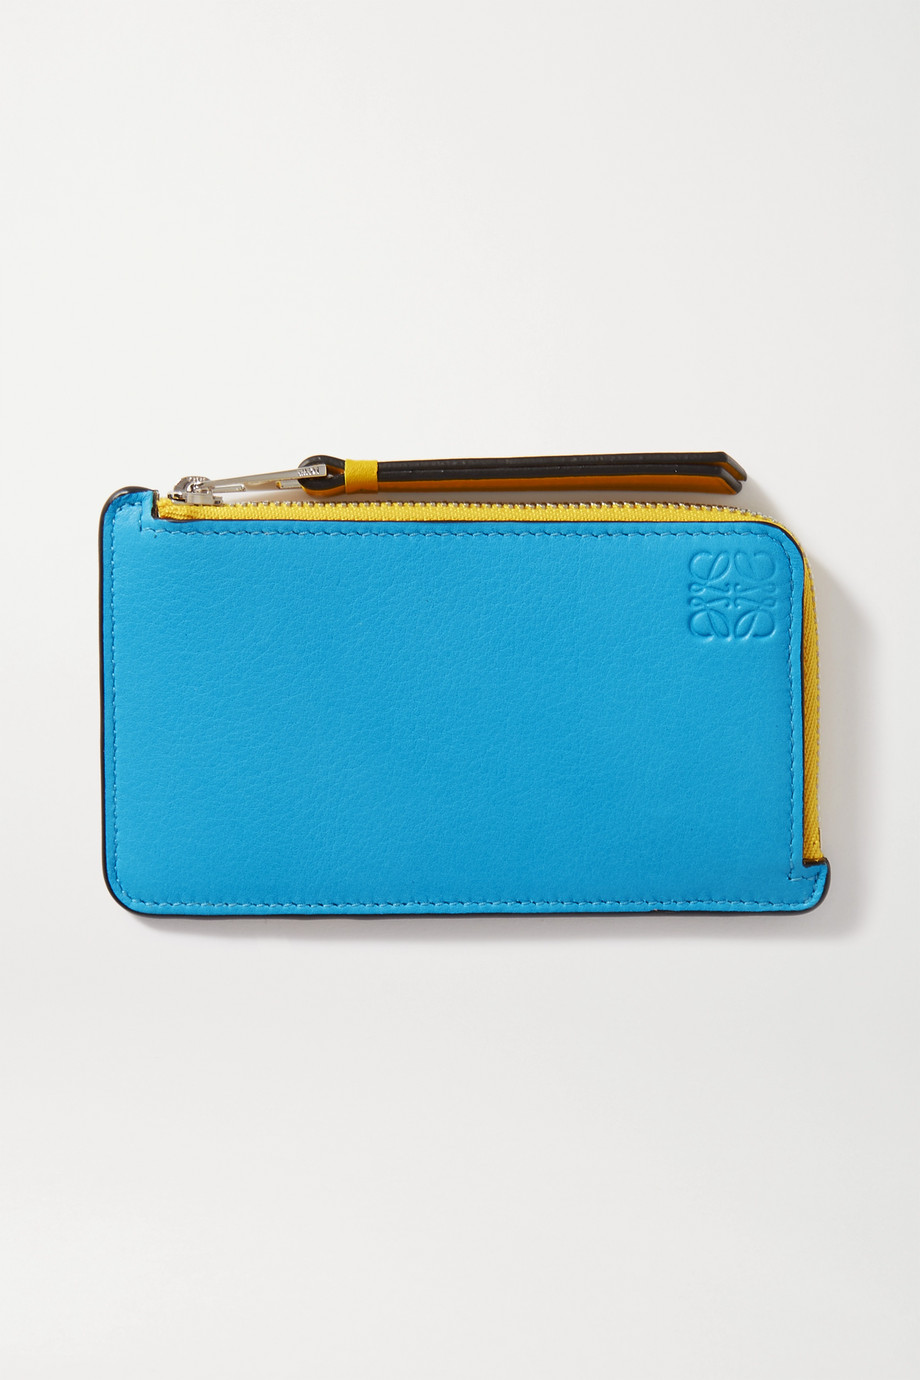 Loewe Puzzle color-block leather cardholder